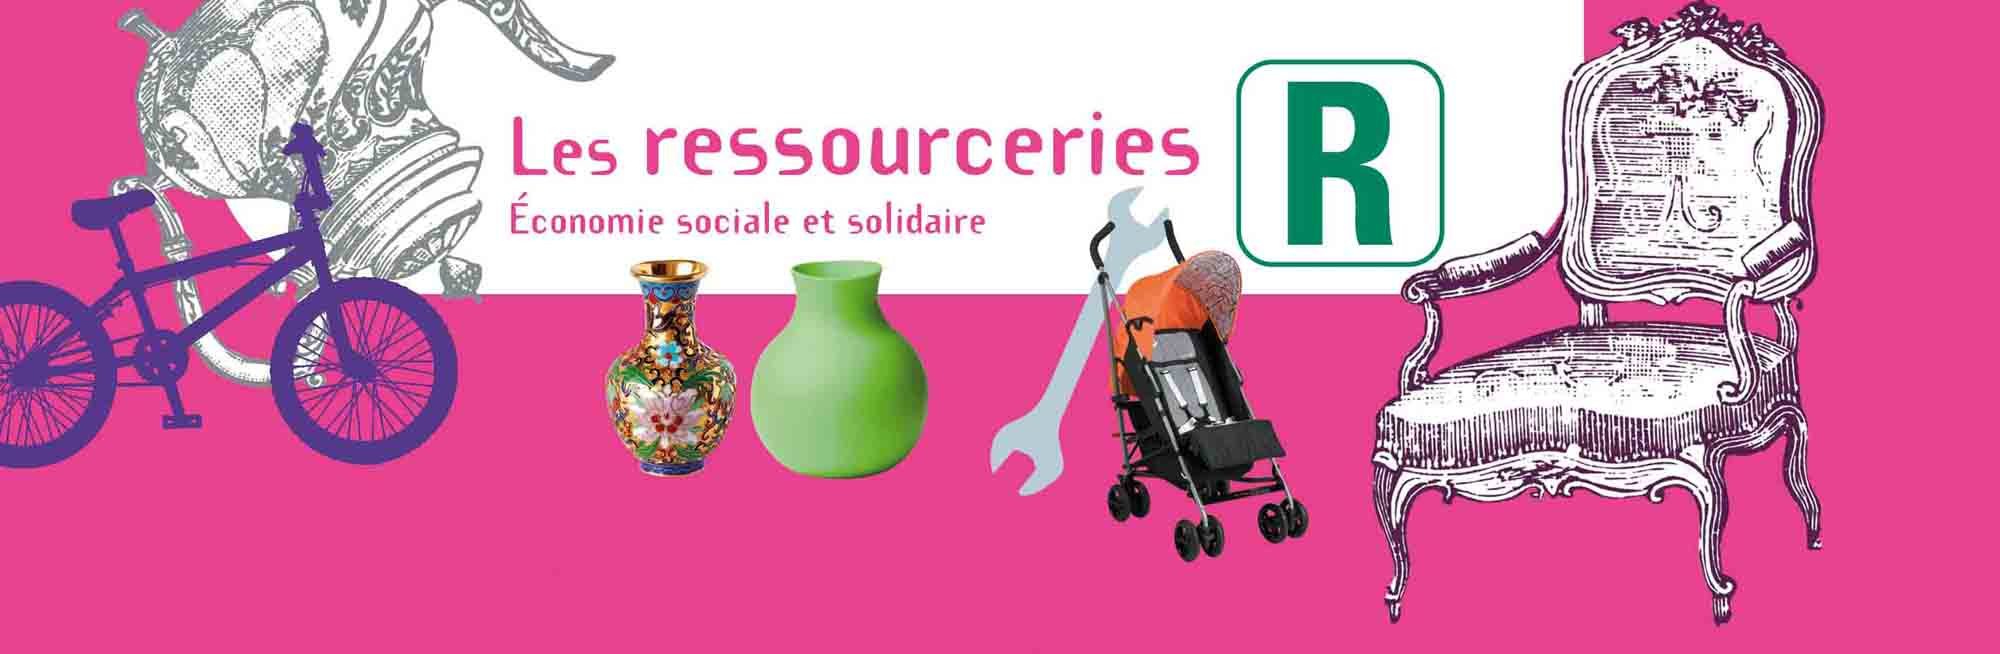 Bandeau Ressourceries